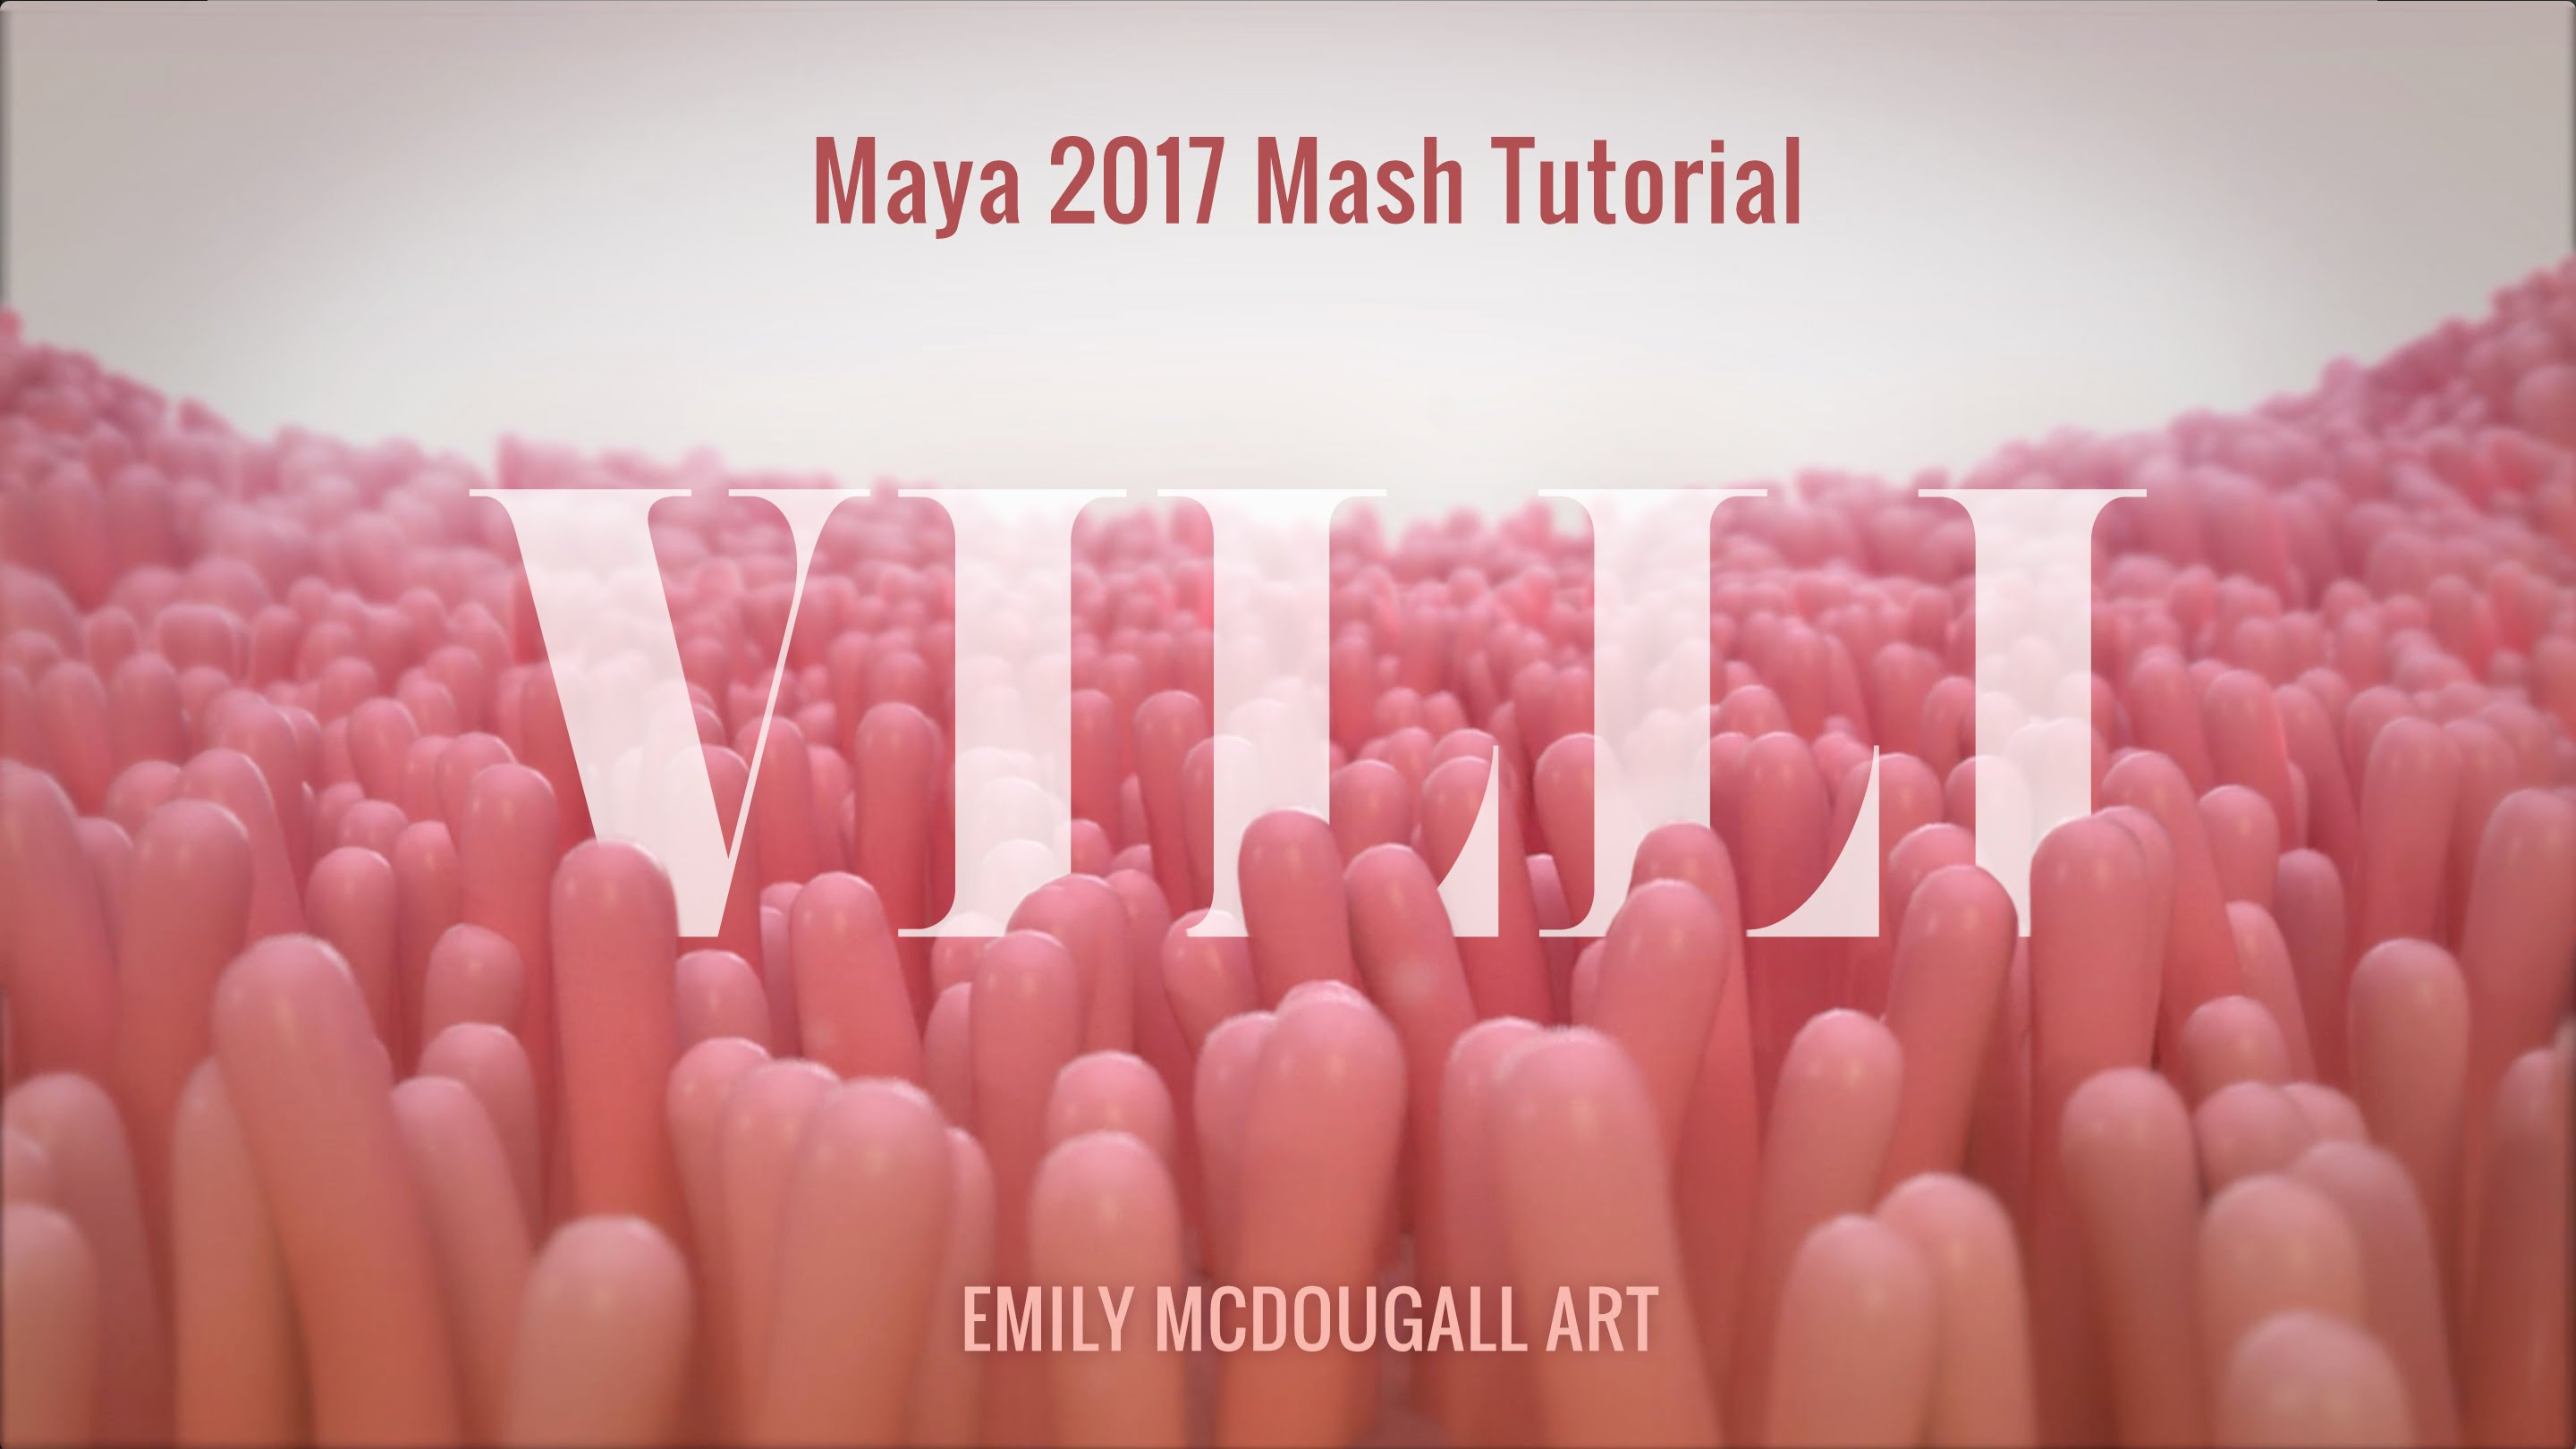 Medical Animation Tutorial: Create Villi using Maya 2017 MASH Motion Graphics